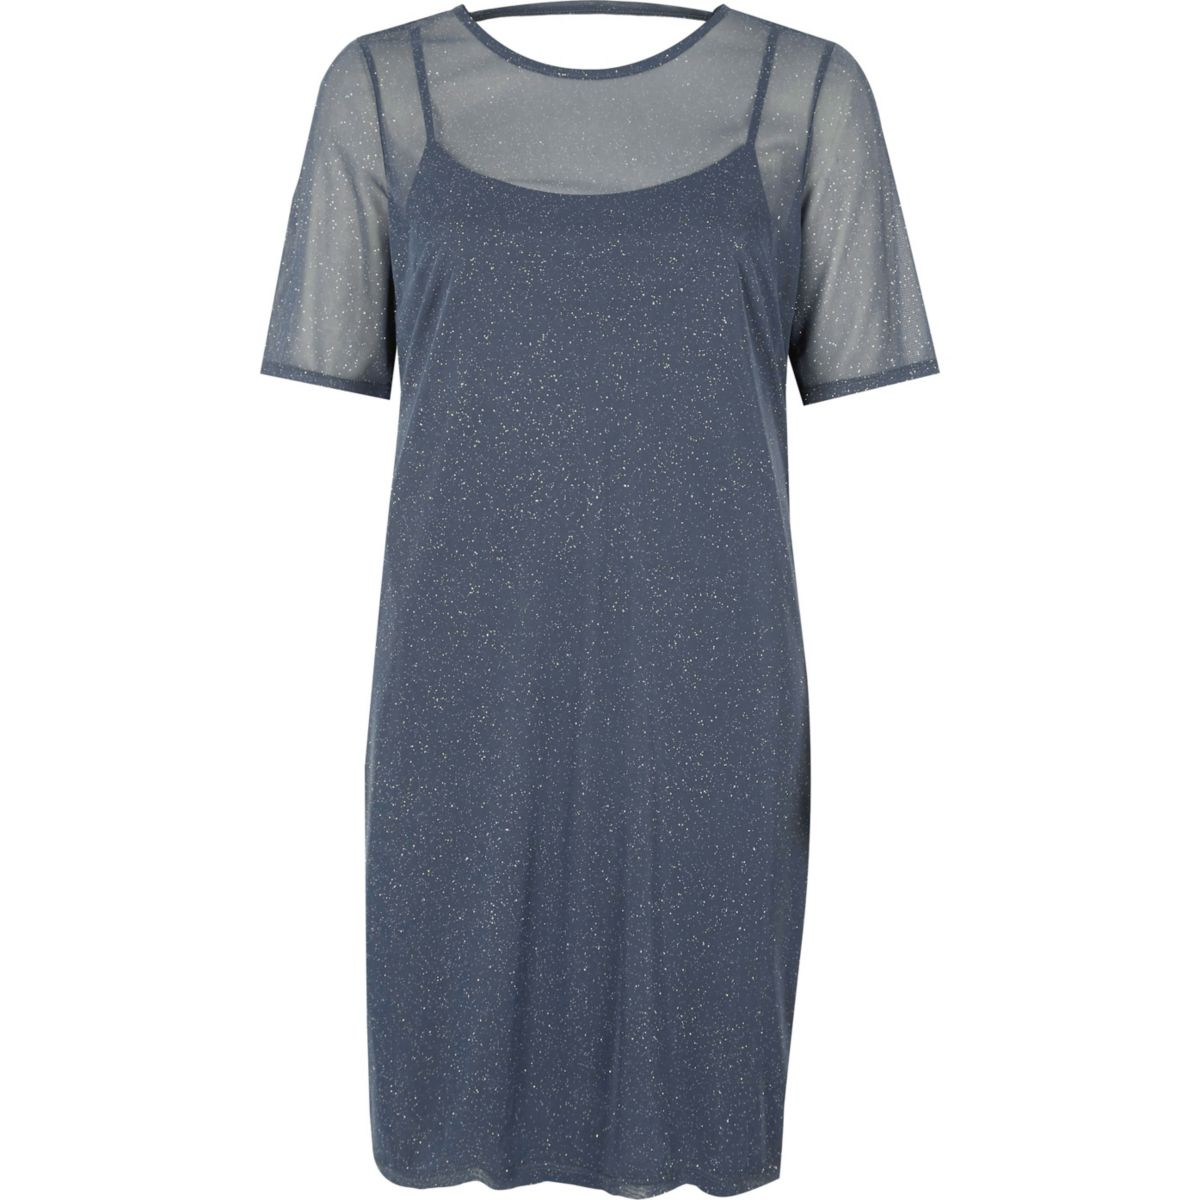 Dark grey glitter mesh T-shirt dress